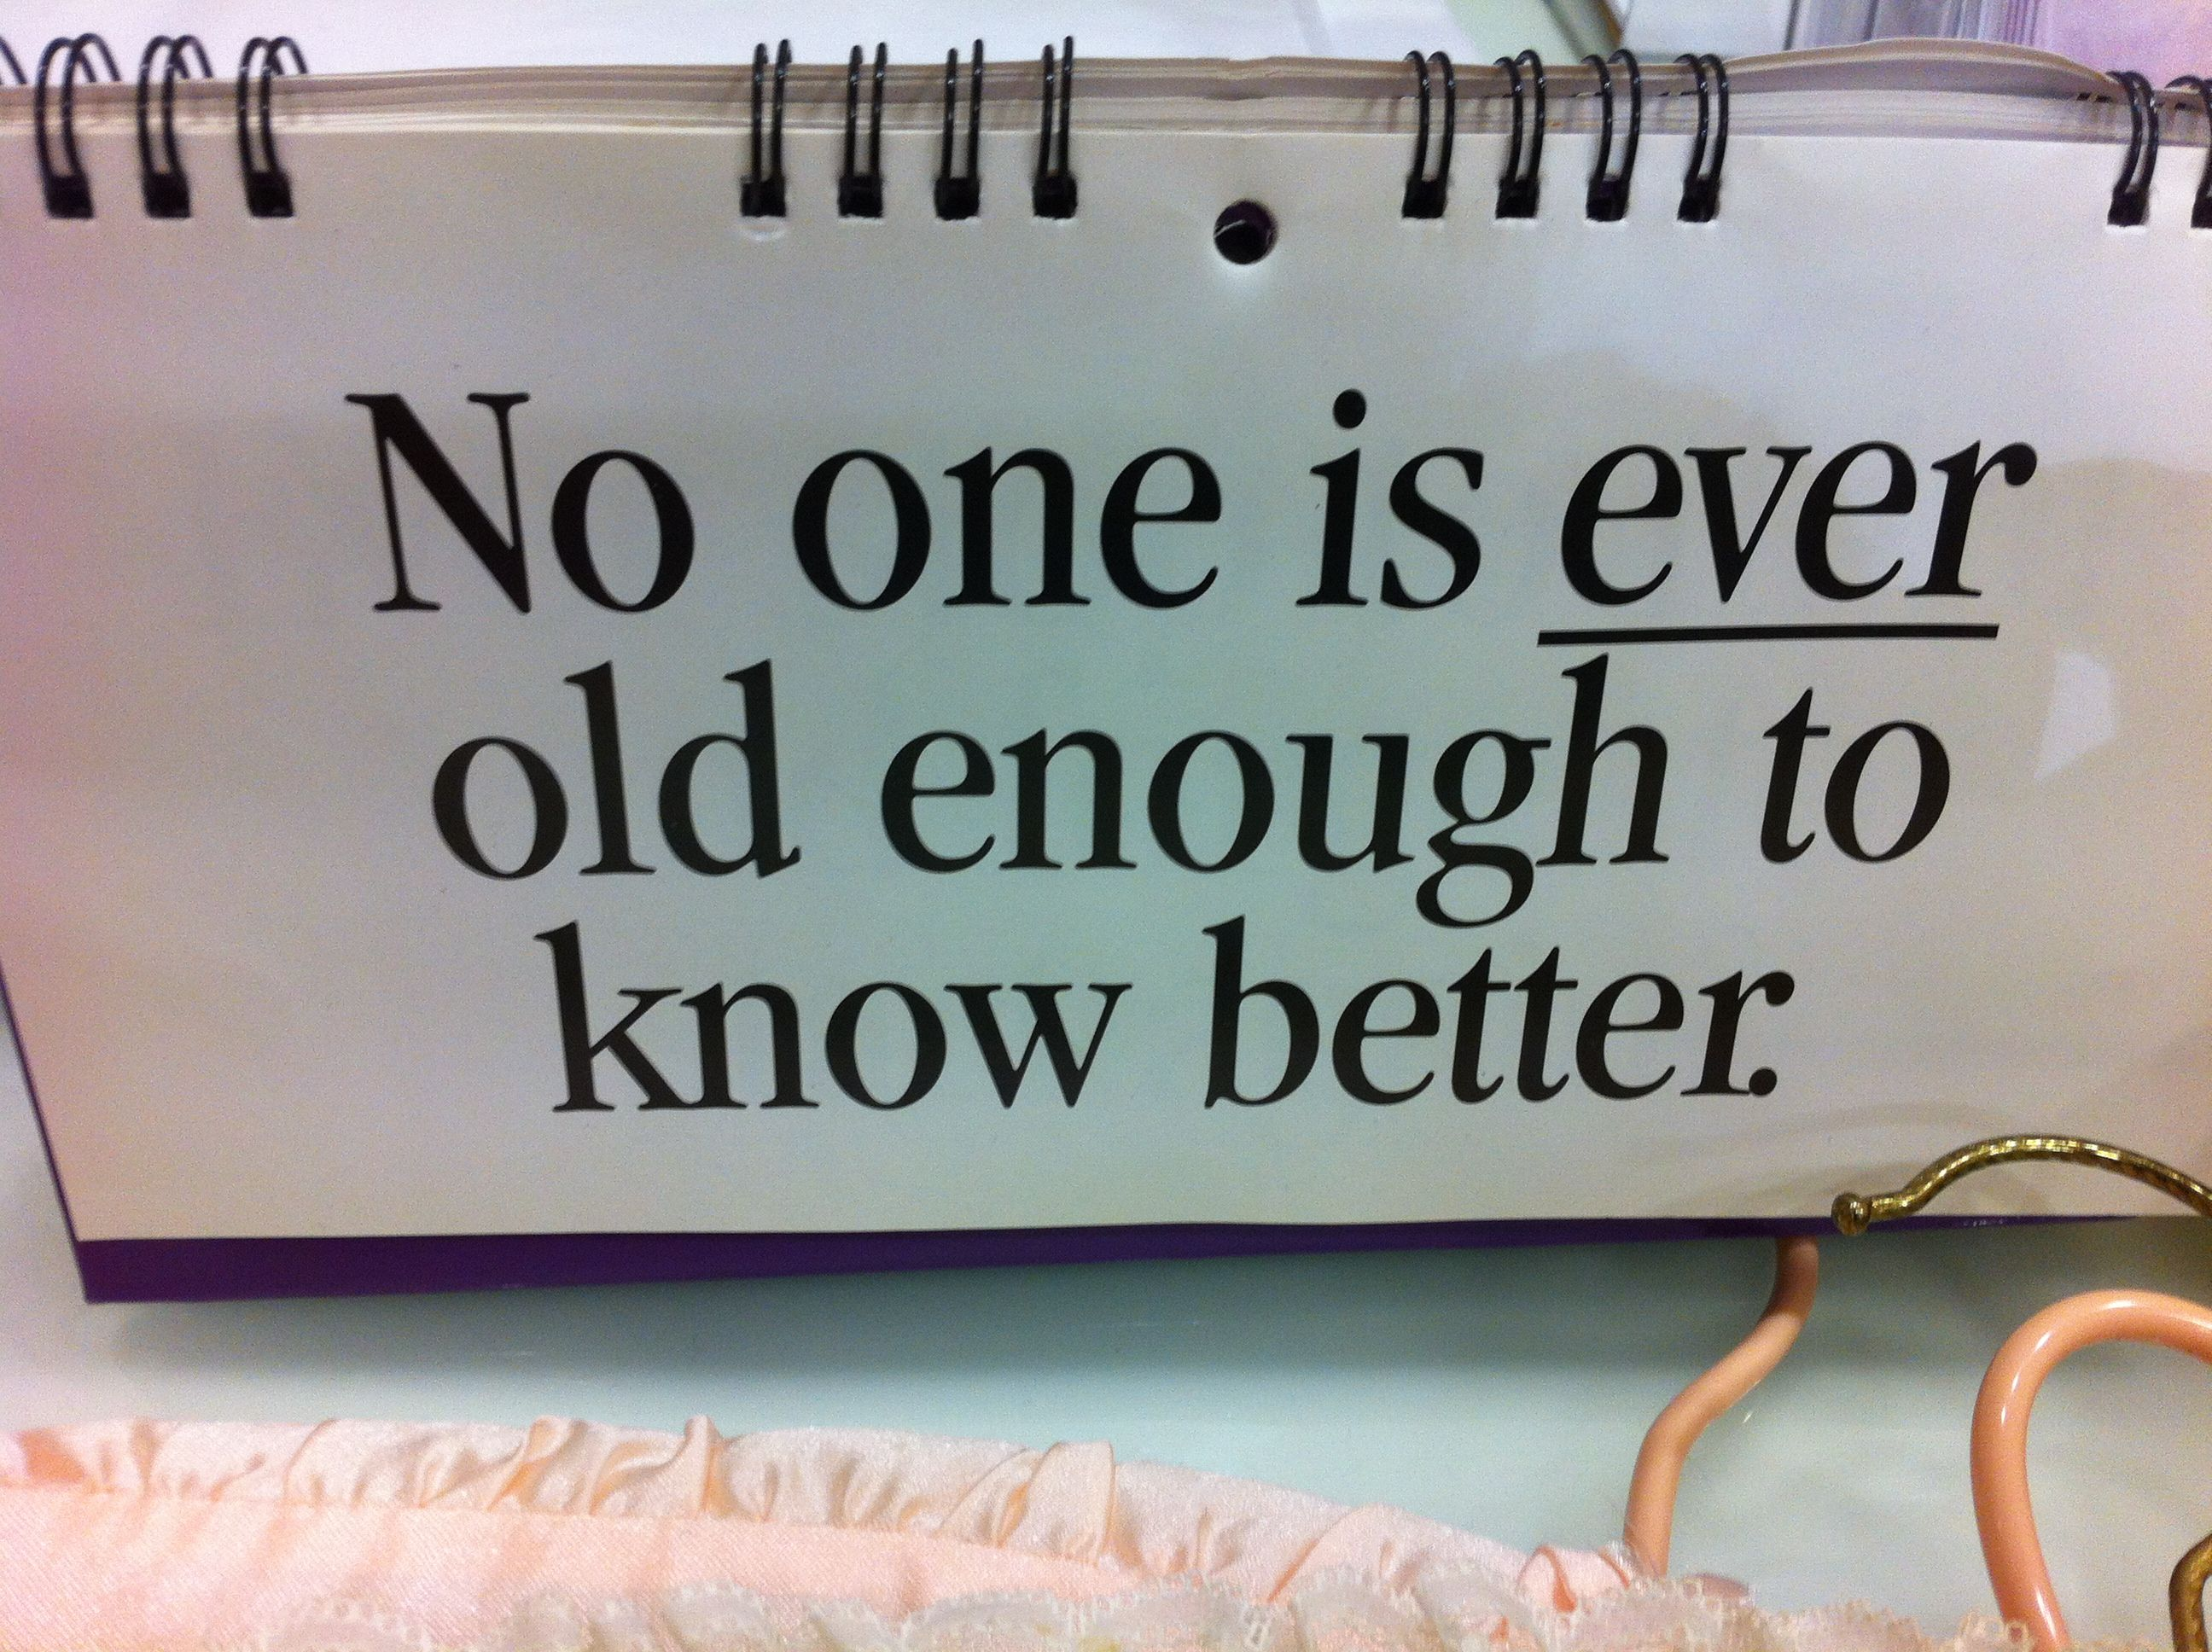 Yay, no-one is EVER old enough to KNOW better.